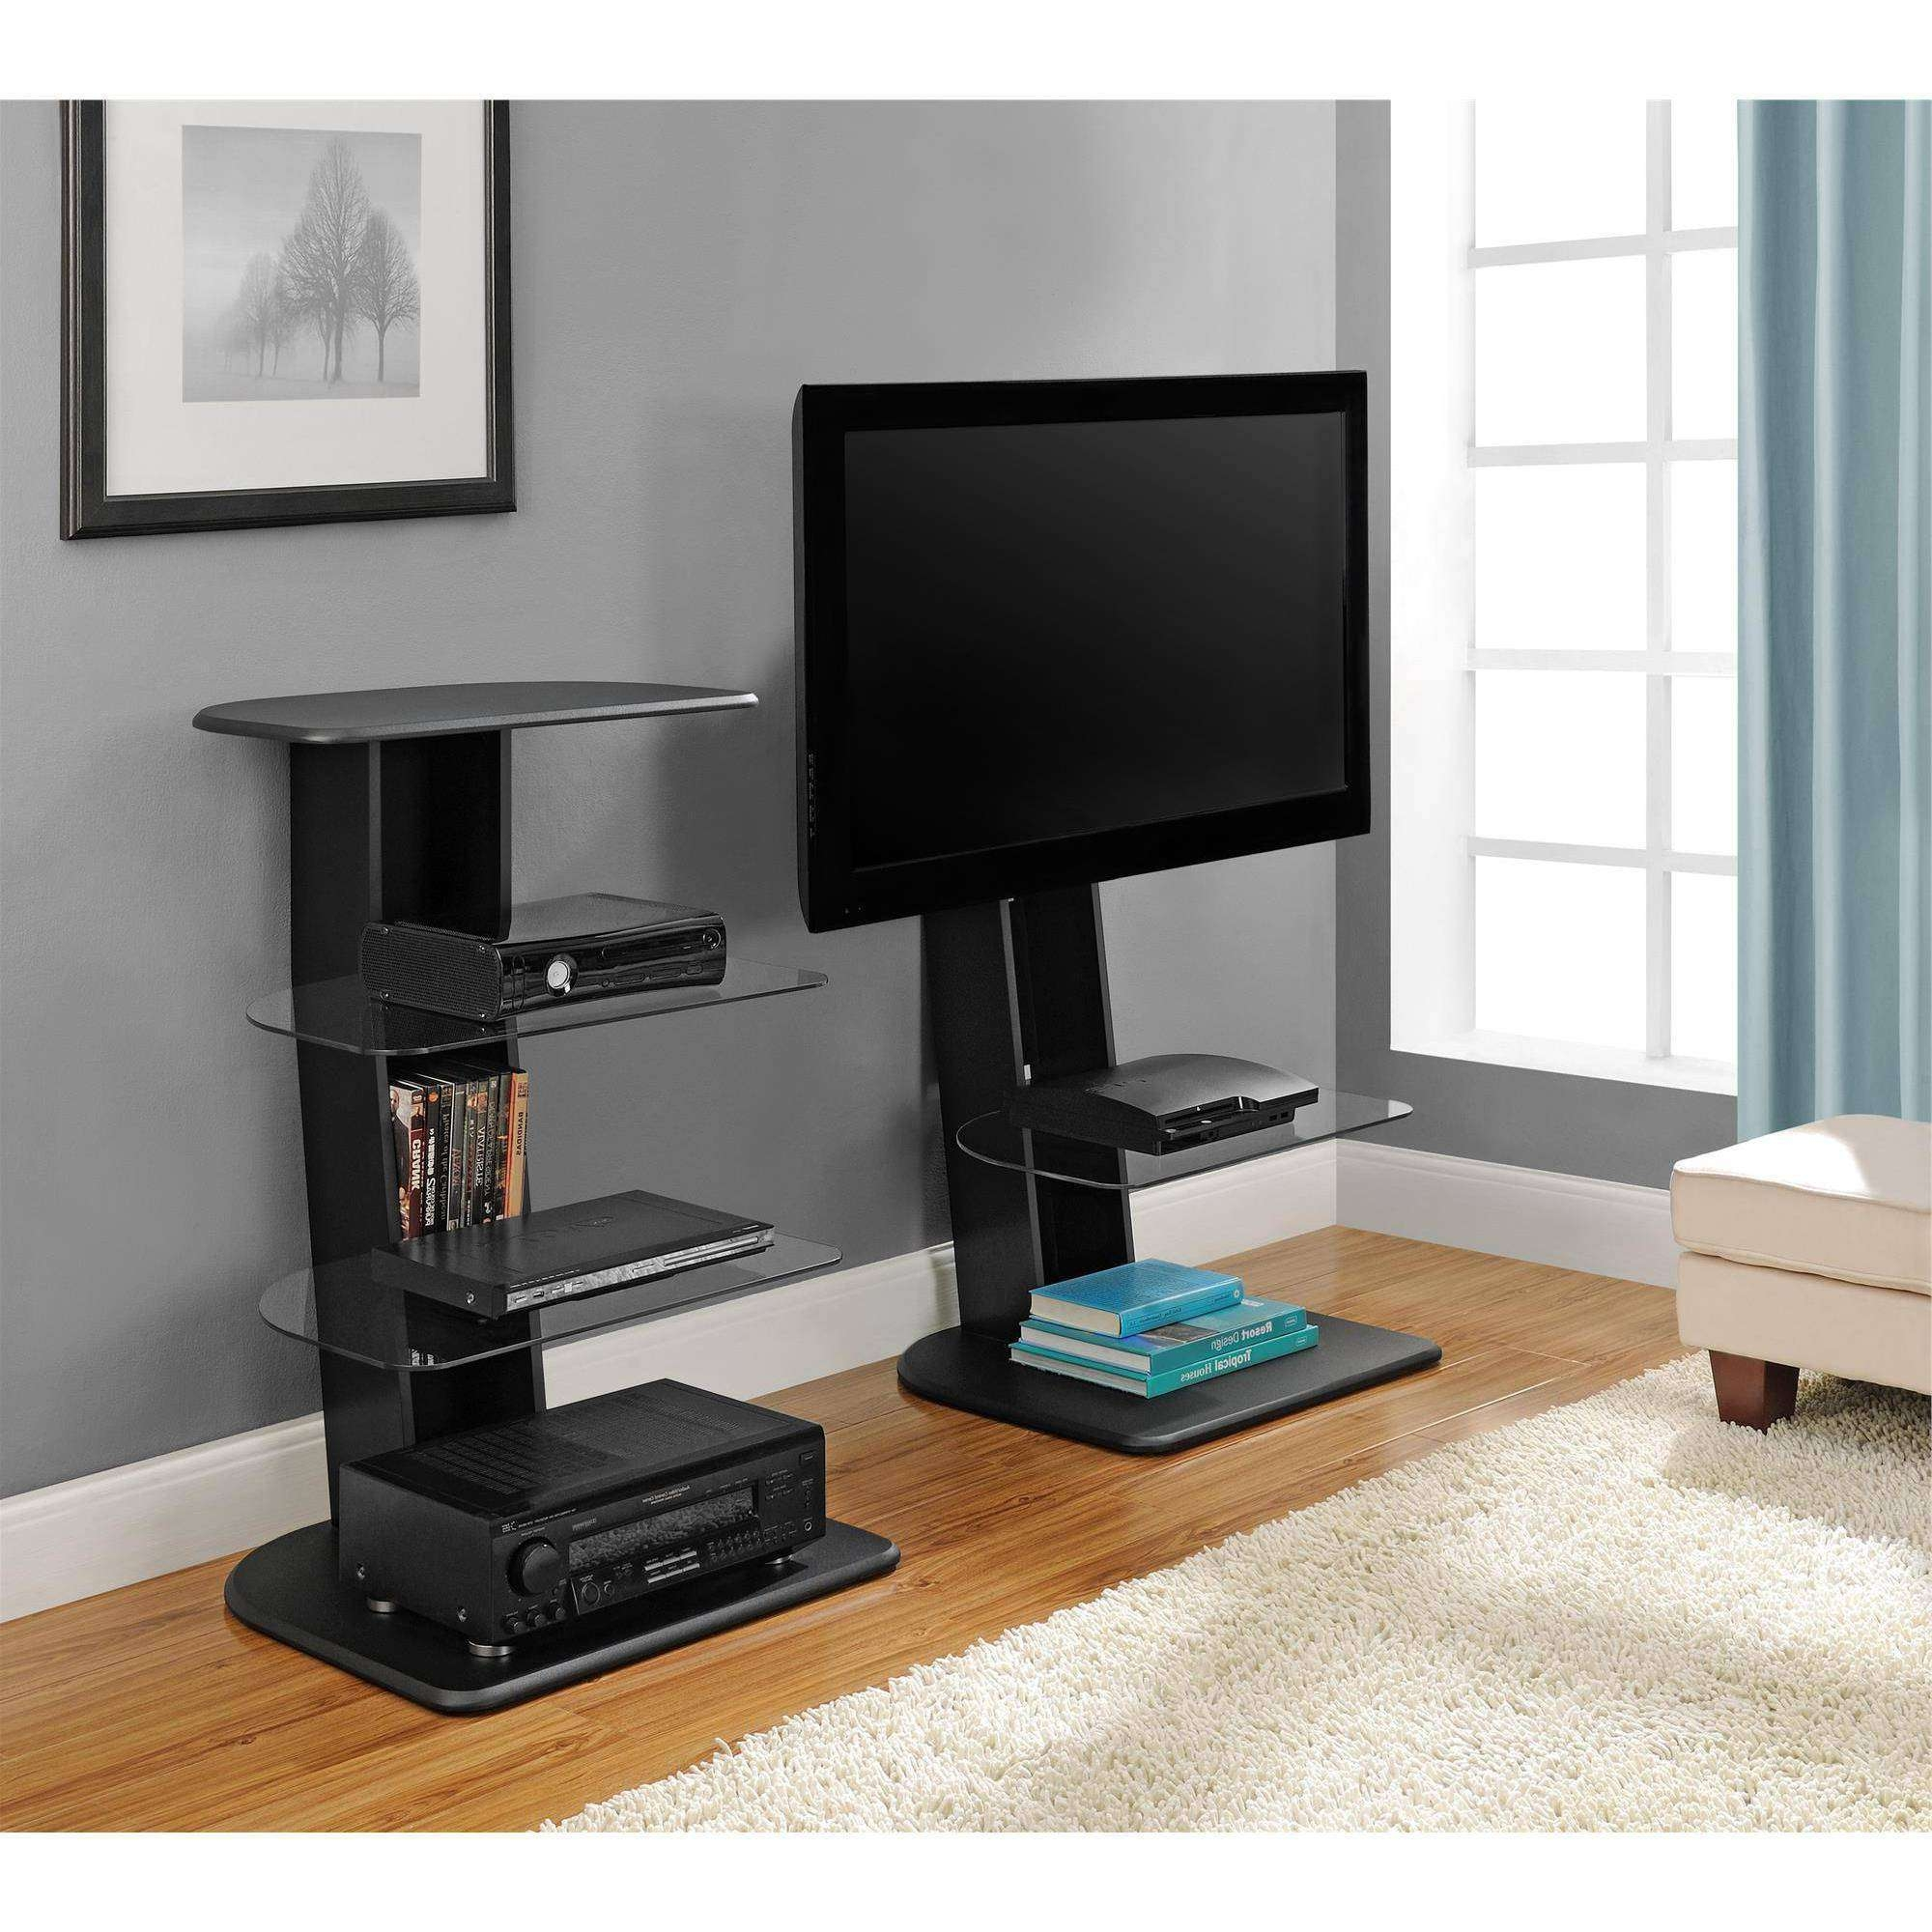 Winsome Wooden Brown Stands Tamonie Small Tv Stand Jennifer Pertaining To Skinny Tv Stands (View 15 of 15)